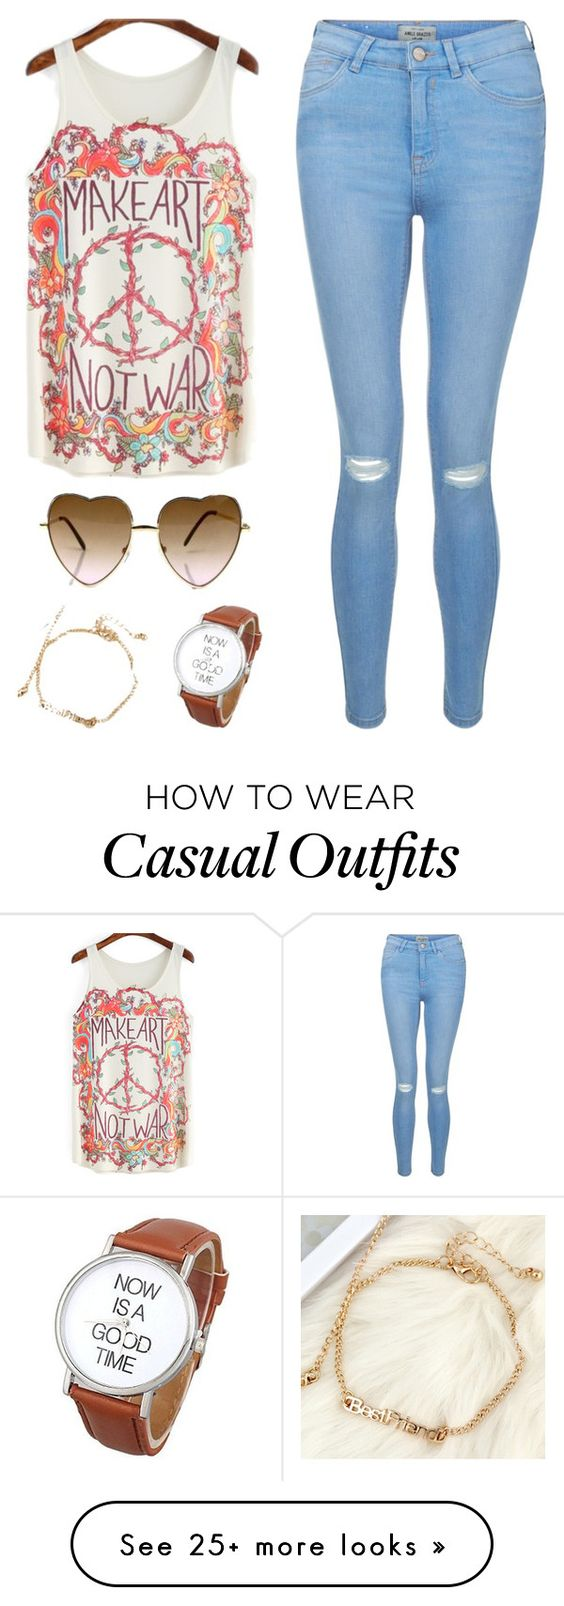 """""""Hippie Casual Outfit Fashion Spring"""" by fab-life-939 on Polyvore featuring New Look"""